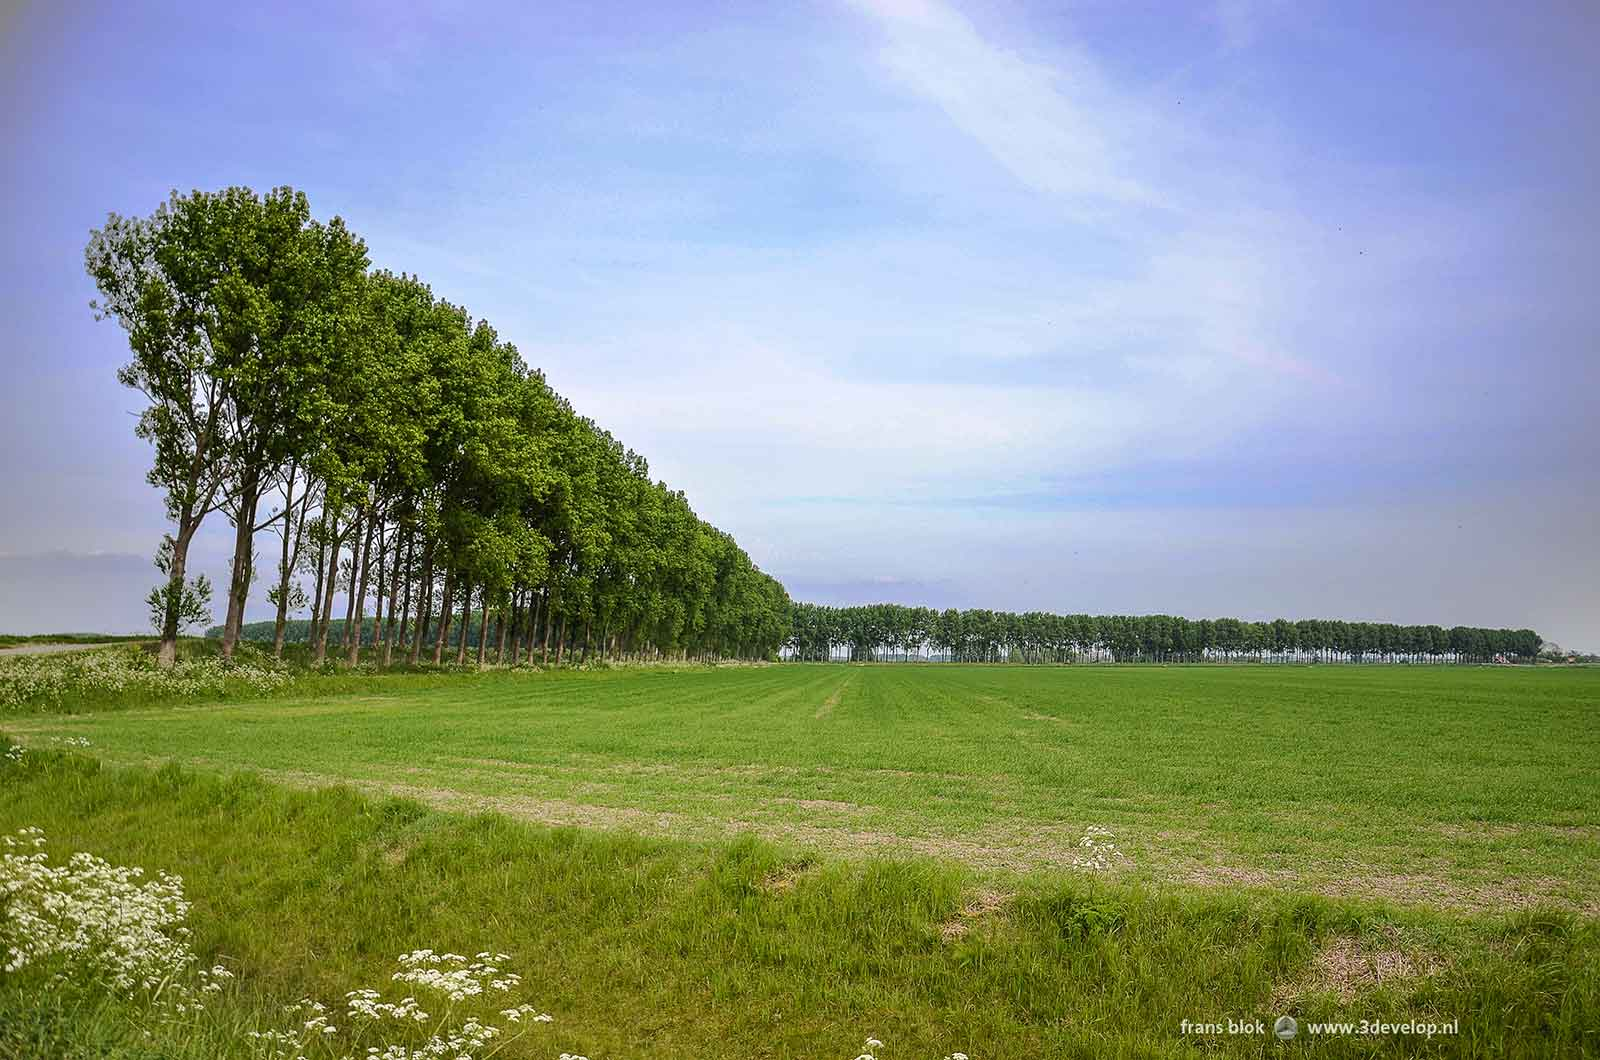 Landscape in the Dutch province of Zeeland, with fields, dikes and rows of trees near the village of Wolphaartsdijk